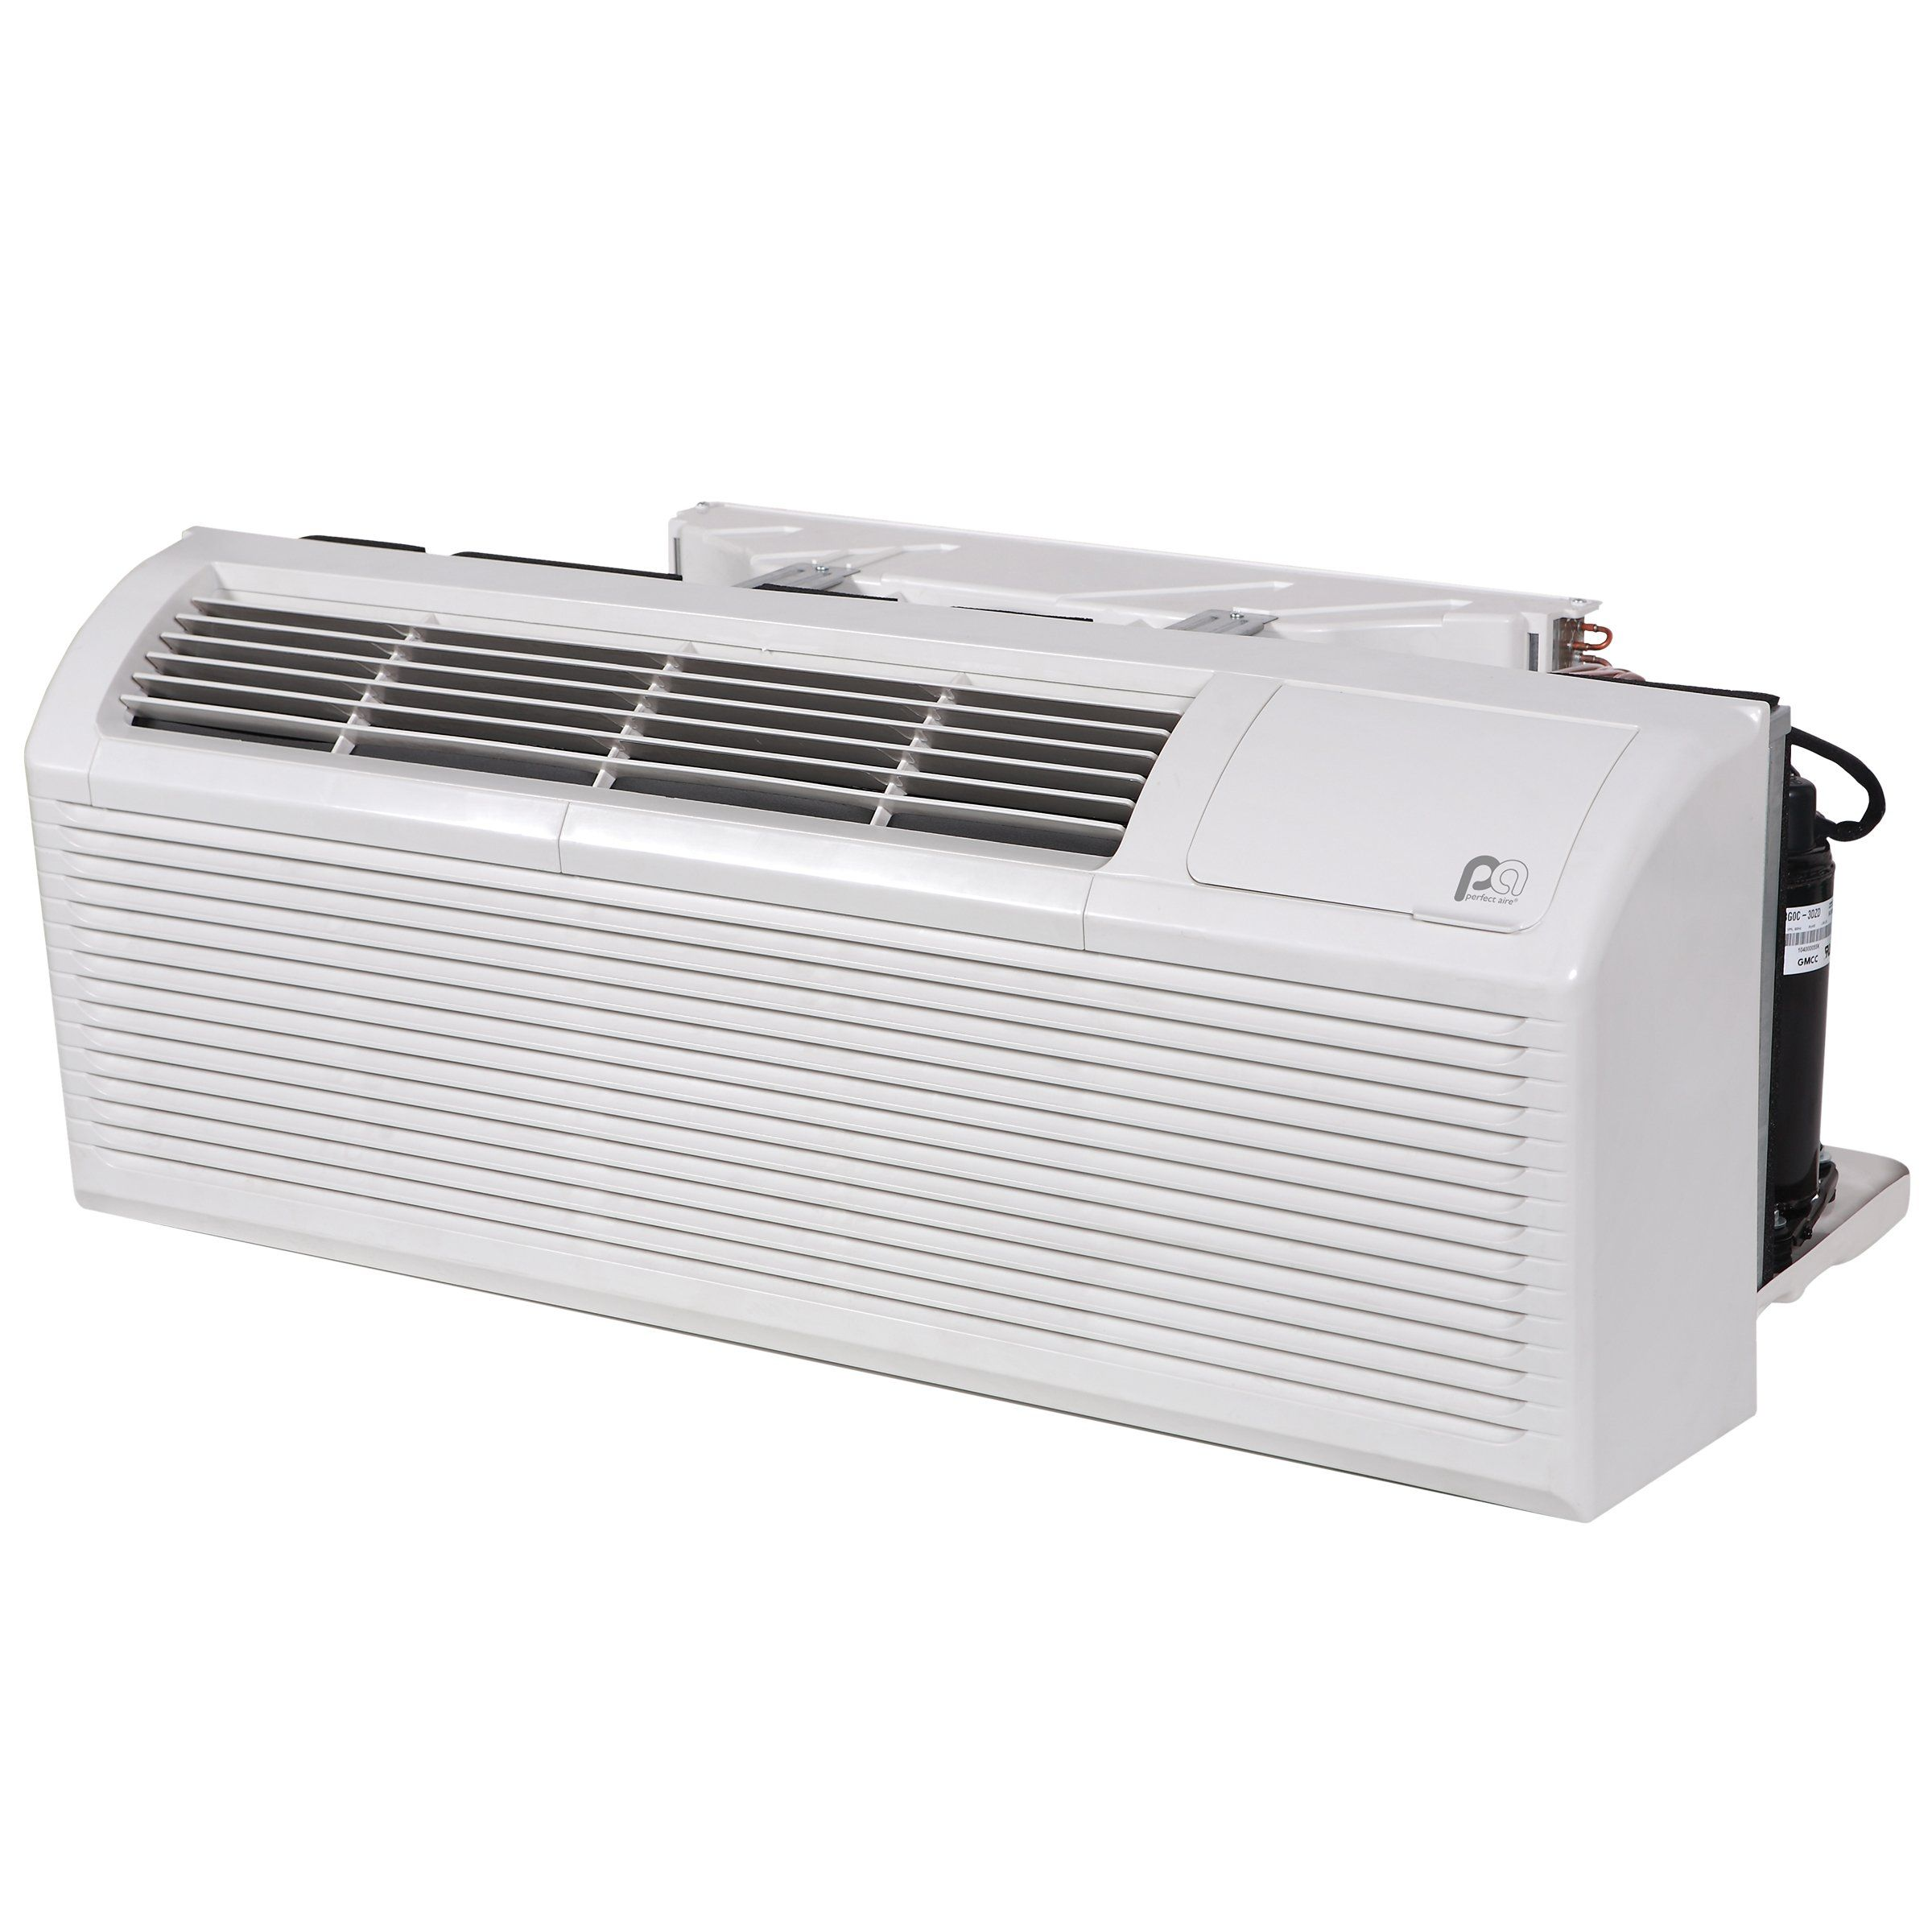 1ptc07a 3 5 Perfect Aire Ptac Air Conditioner 208 230 Volt 7100 7300 Btu Cooling Only Air Conditioner Electric Heater Heat Pump Air Conditioner